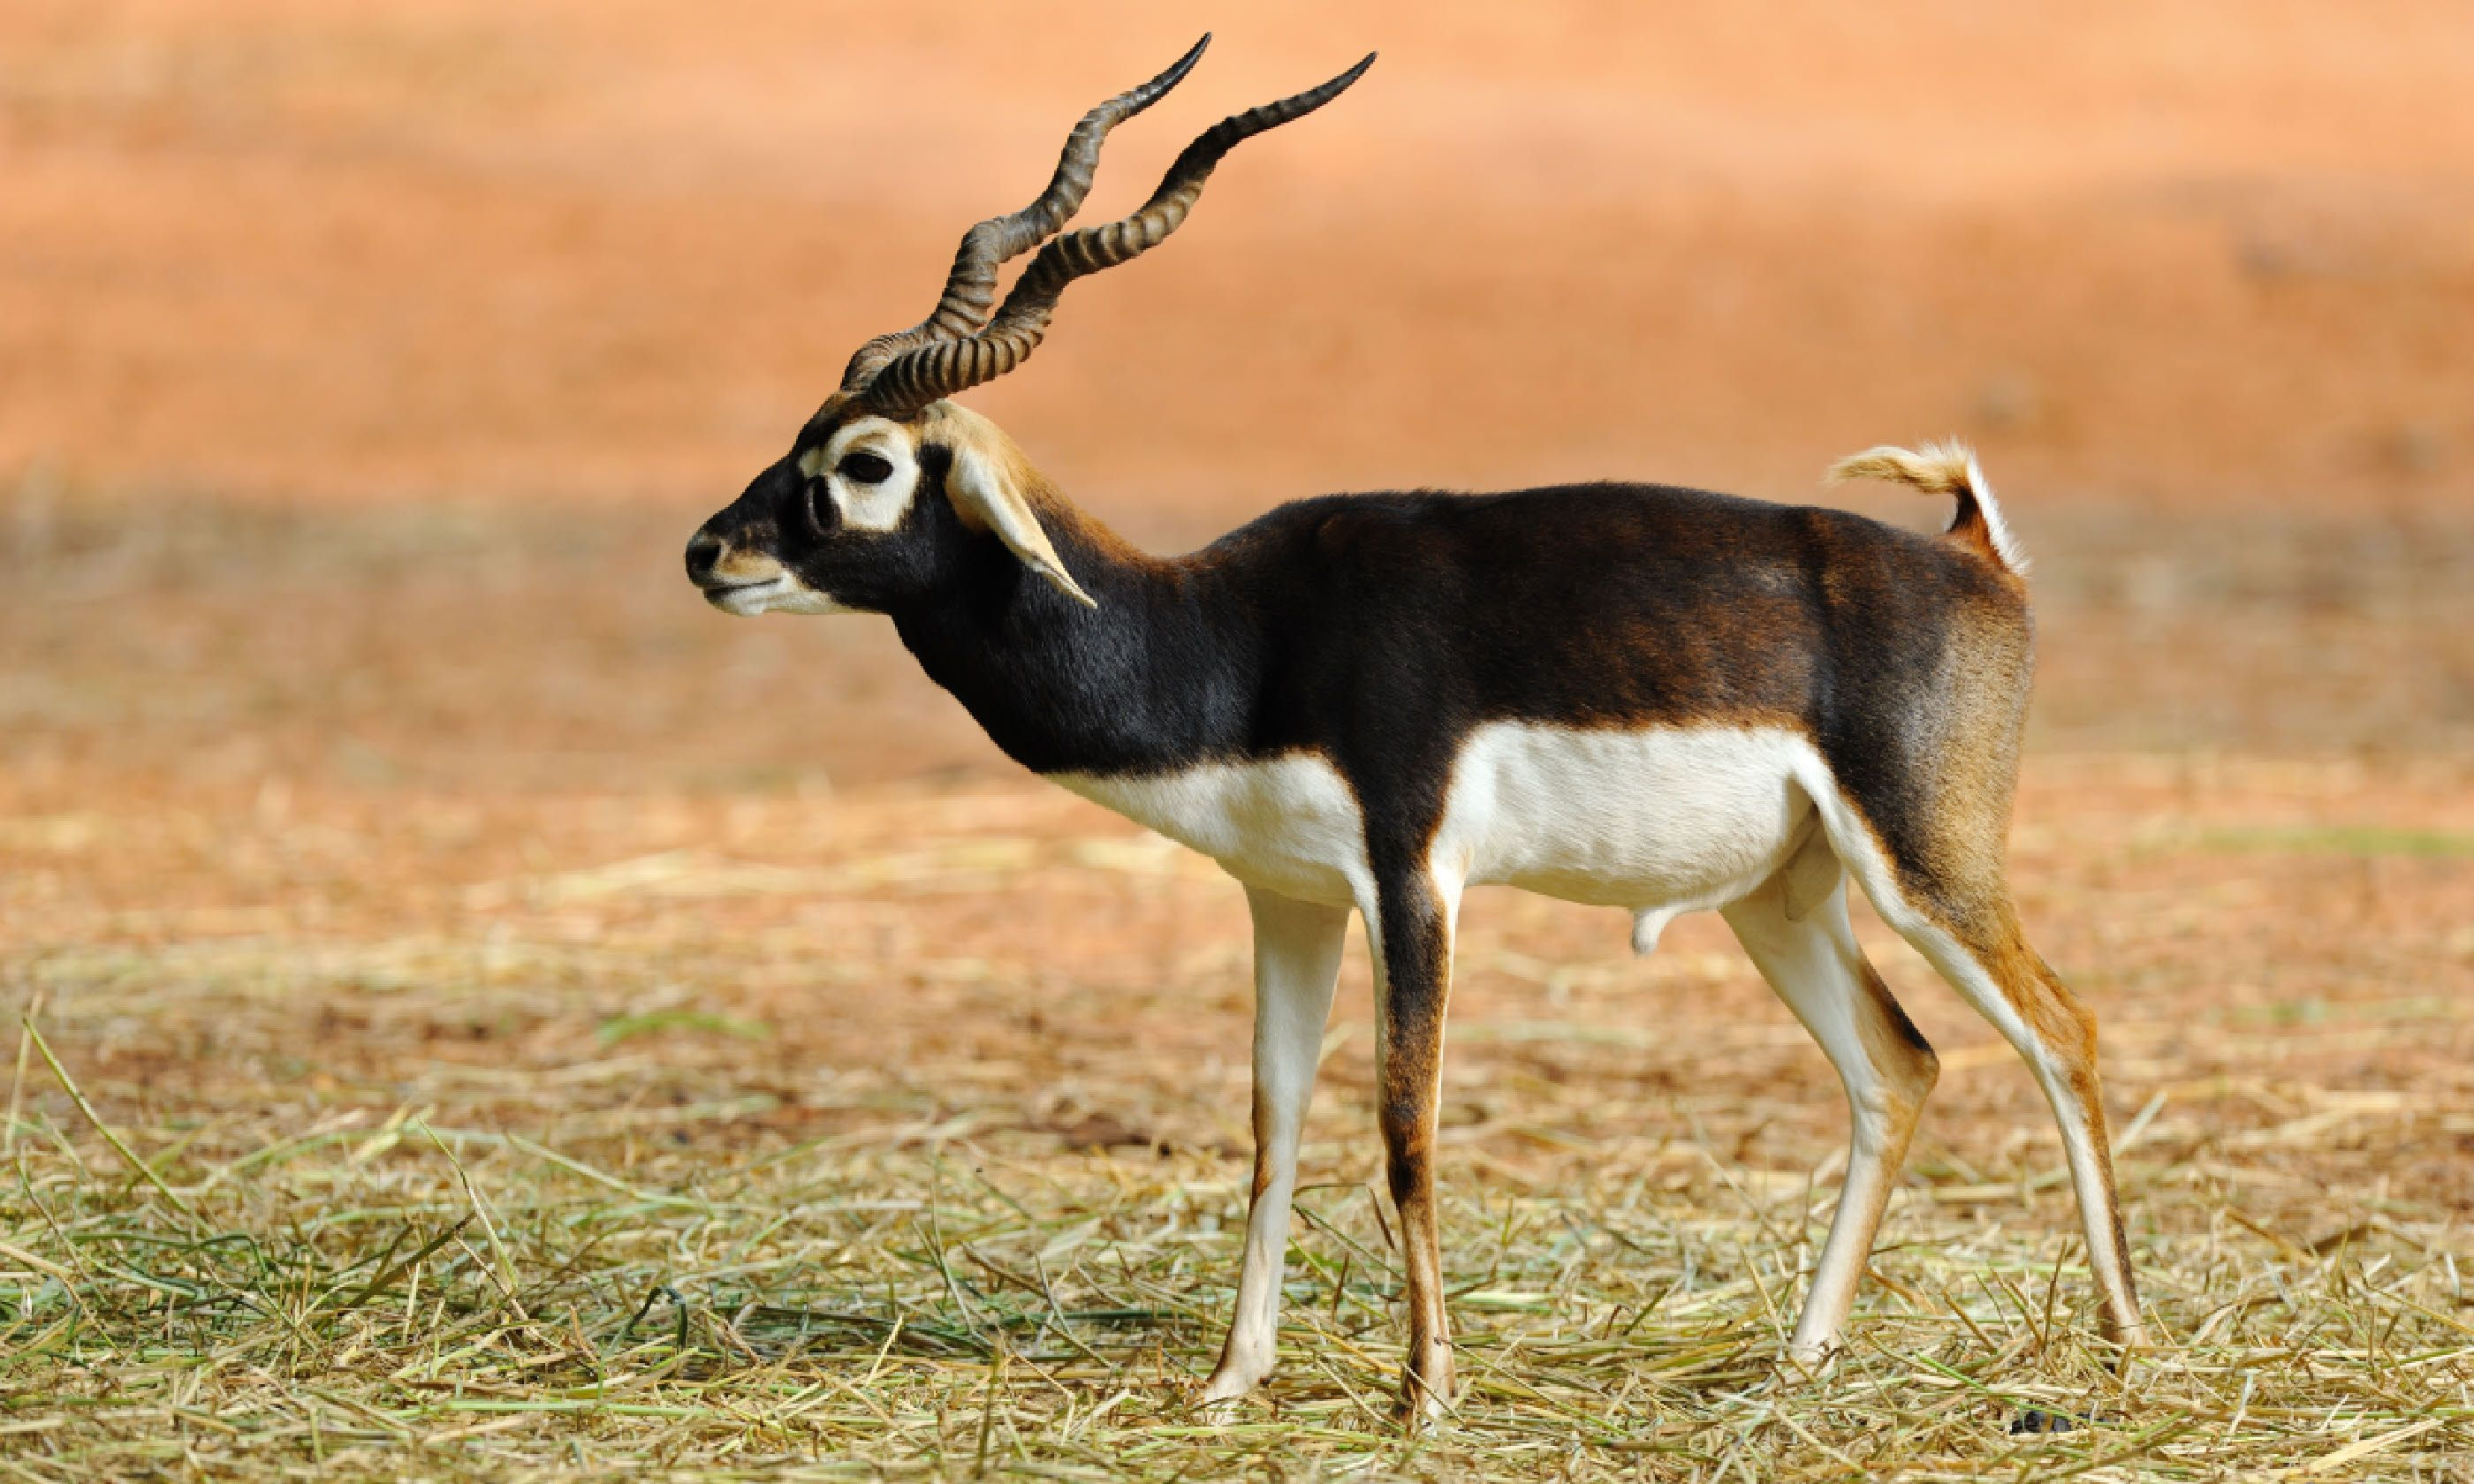 Indian blackbuck antelope (Shutterstock)